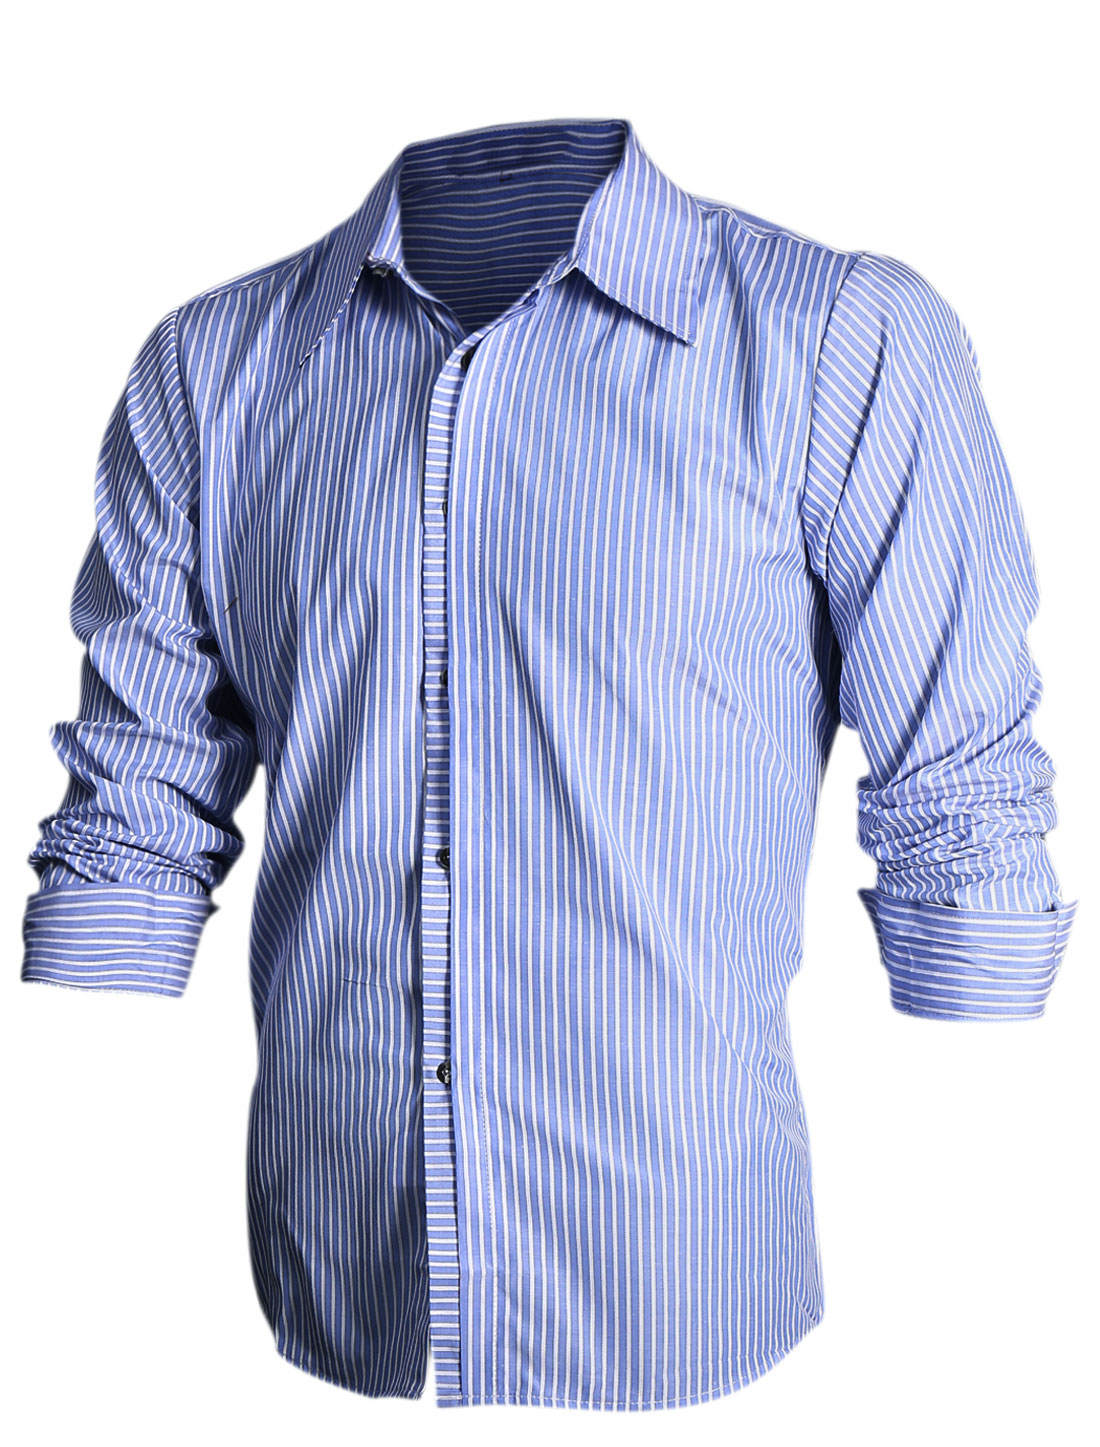 Men Vertical Stripes Buttoned Cuff Slim Fit Top Shirt Blue White M